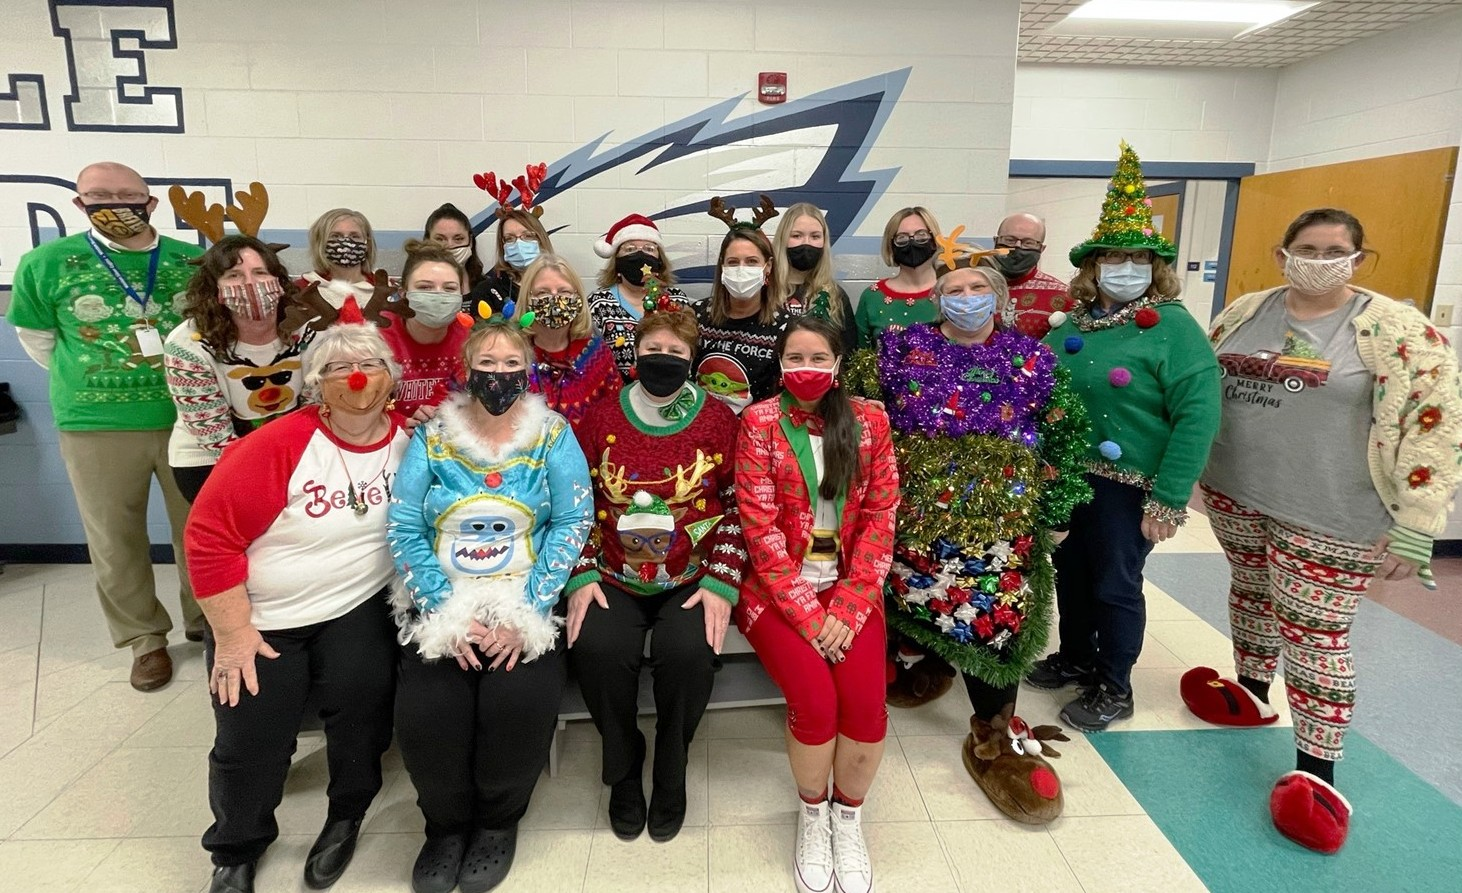 Weston School District held its Ugly Sweater Contest among staff in December. Seen here are all the employees who participated. (Submitted photos)